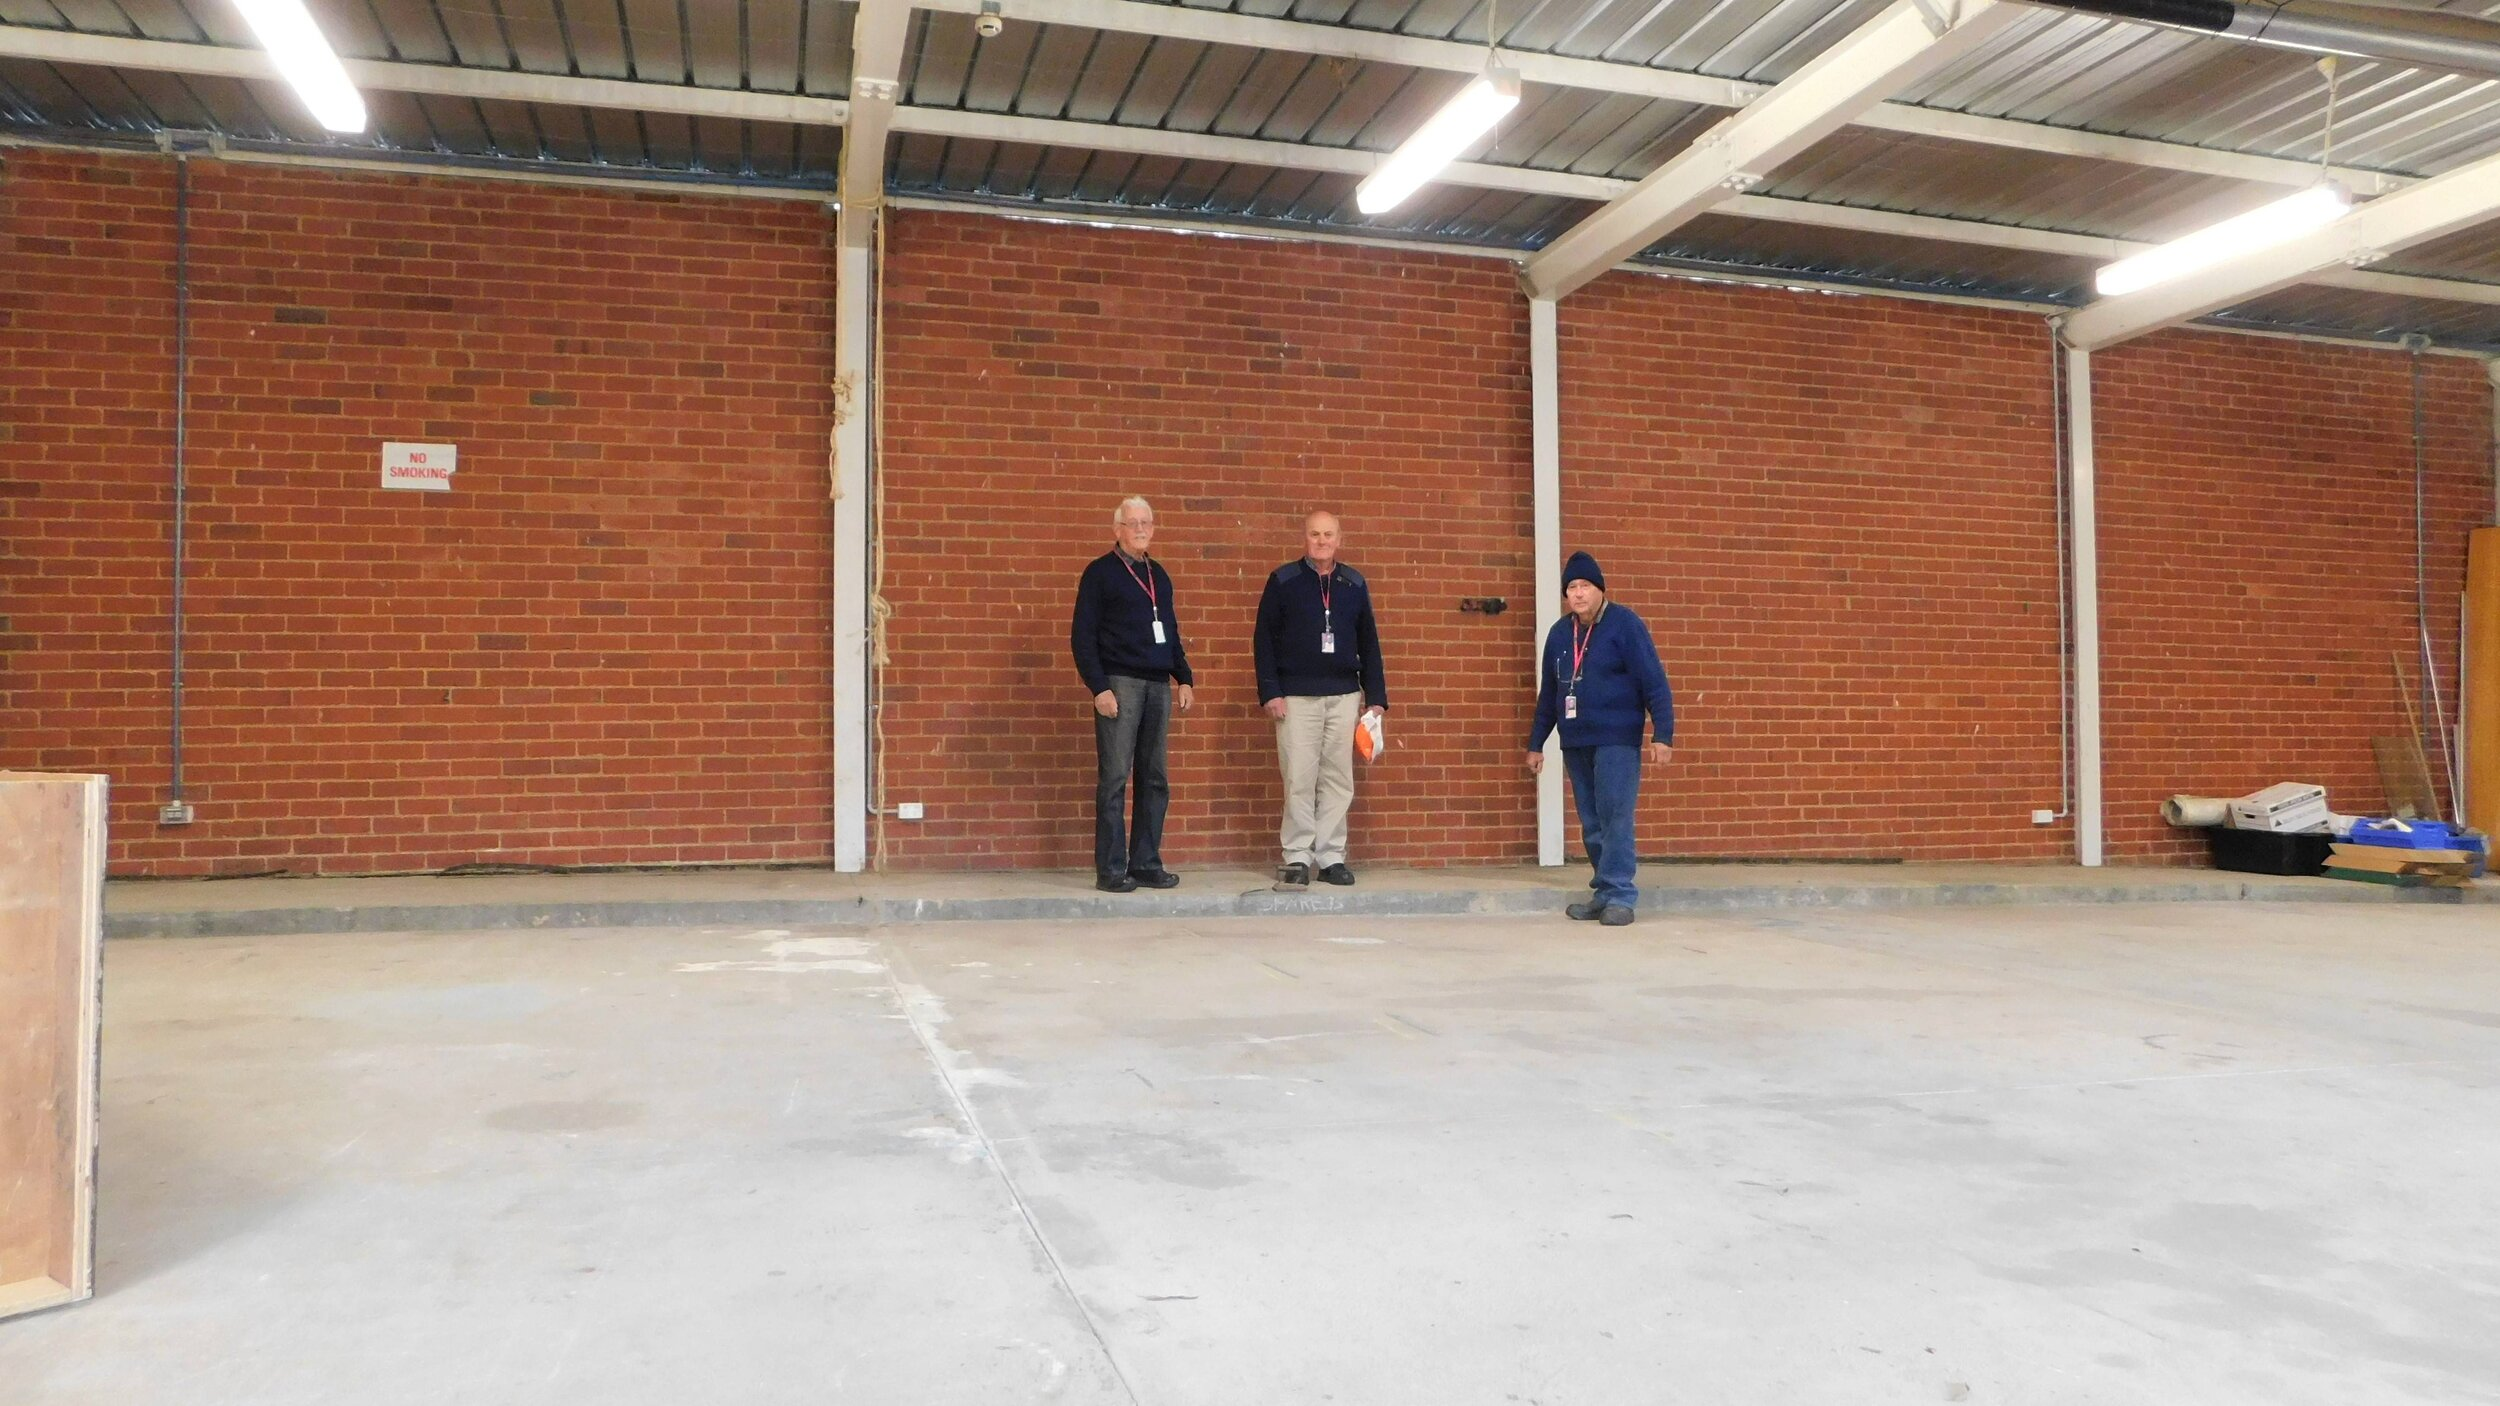 Before we started work. Doug Hunter, Robert Dawe and Graham Garvie standing against the wall where the prefabricated fixtures are to be installed.